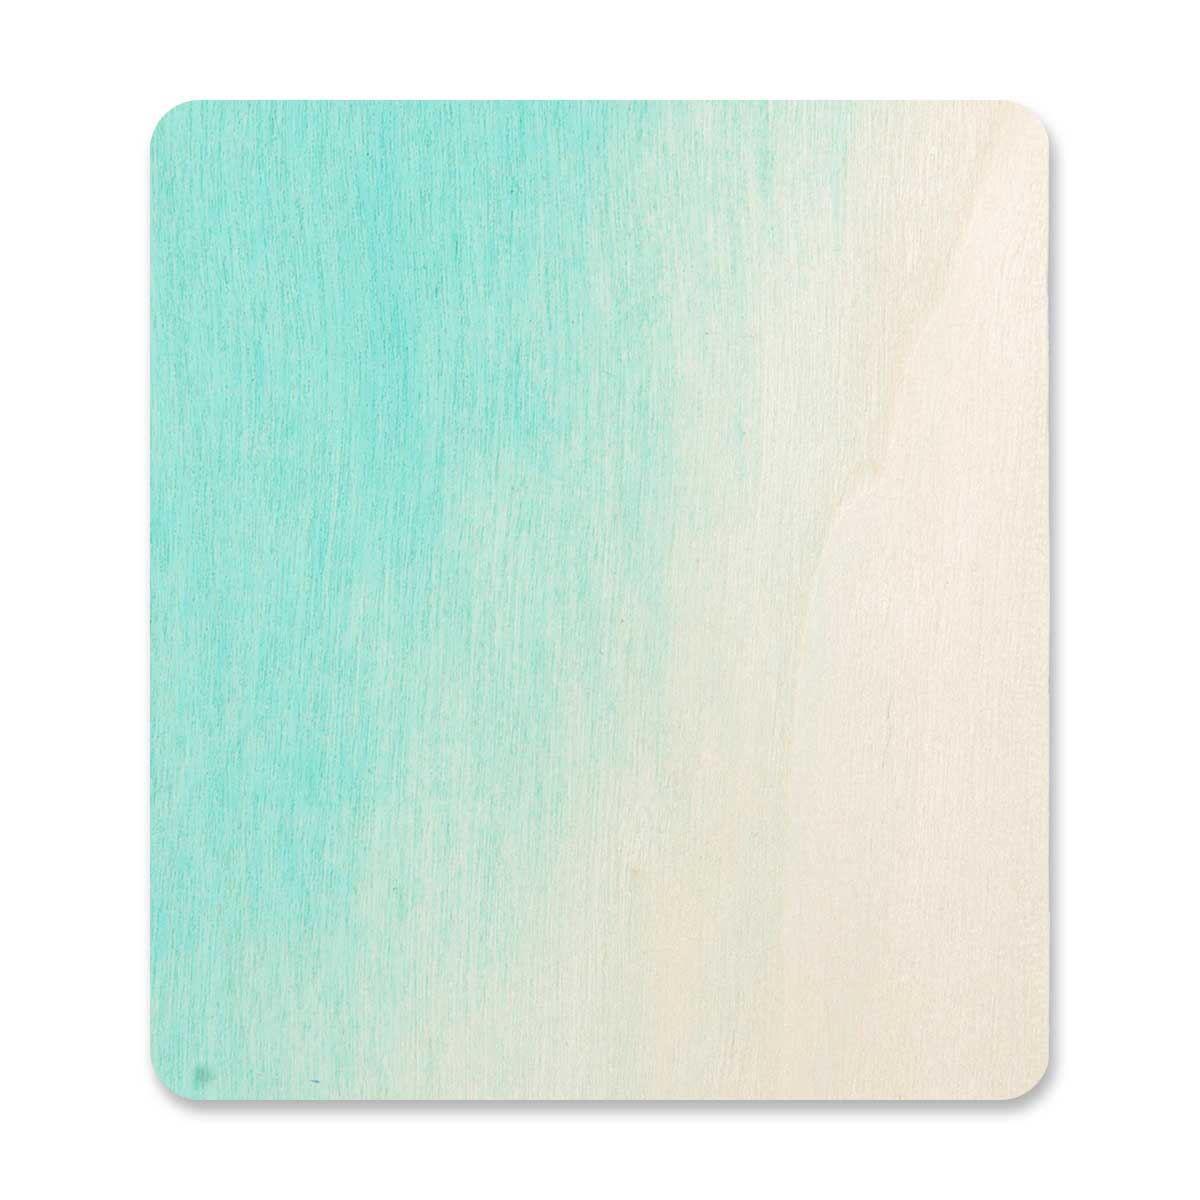 F/A WATERCOLOR ACRYLIC PASTEL TURQUOISE 2 OZ.